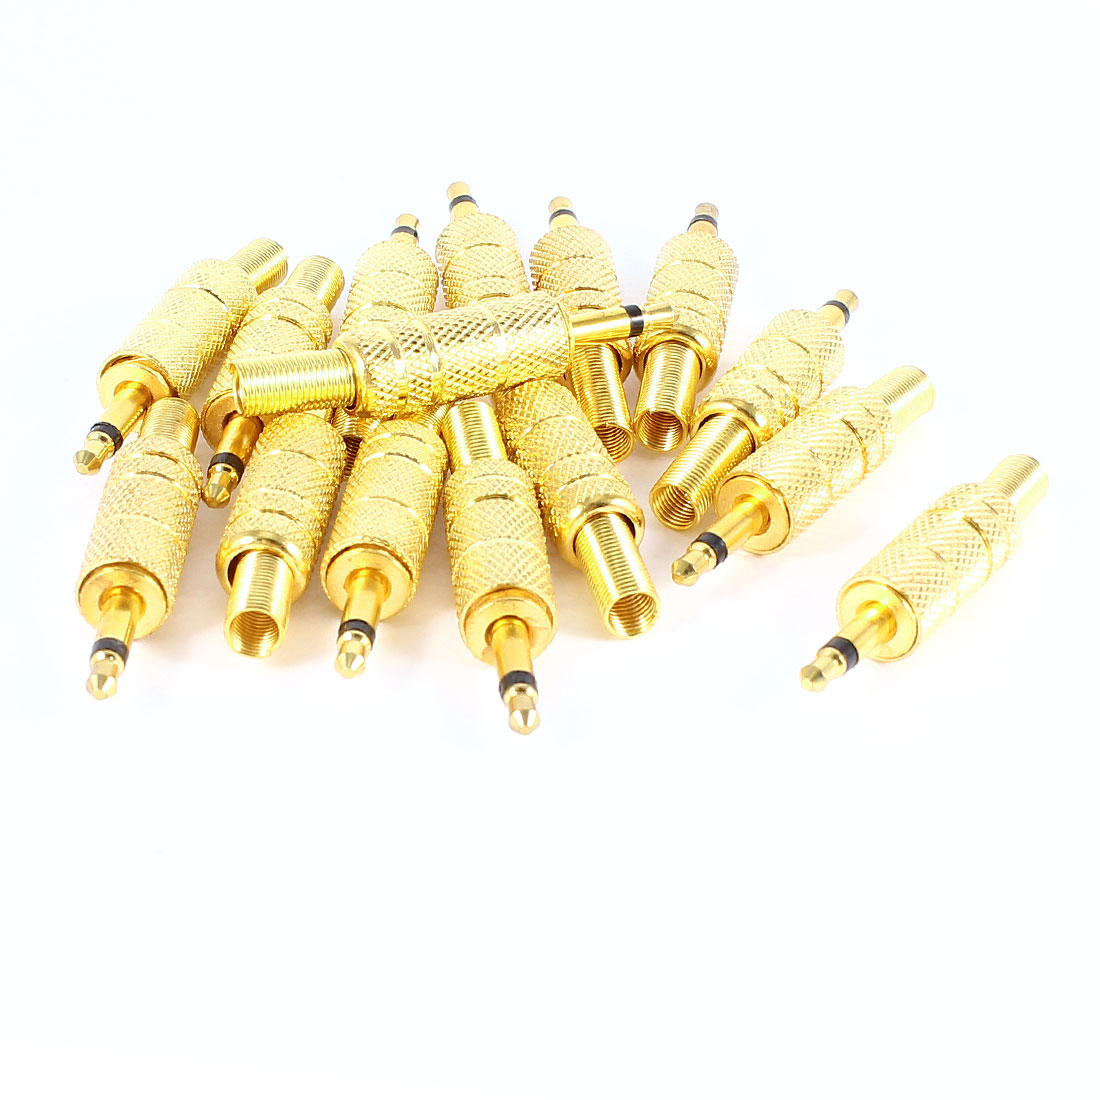 15pcs Audio Connector 3.5mm Stereo Male Jack DIY Solder Spring Adapter